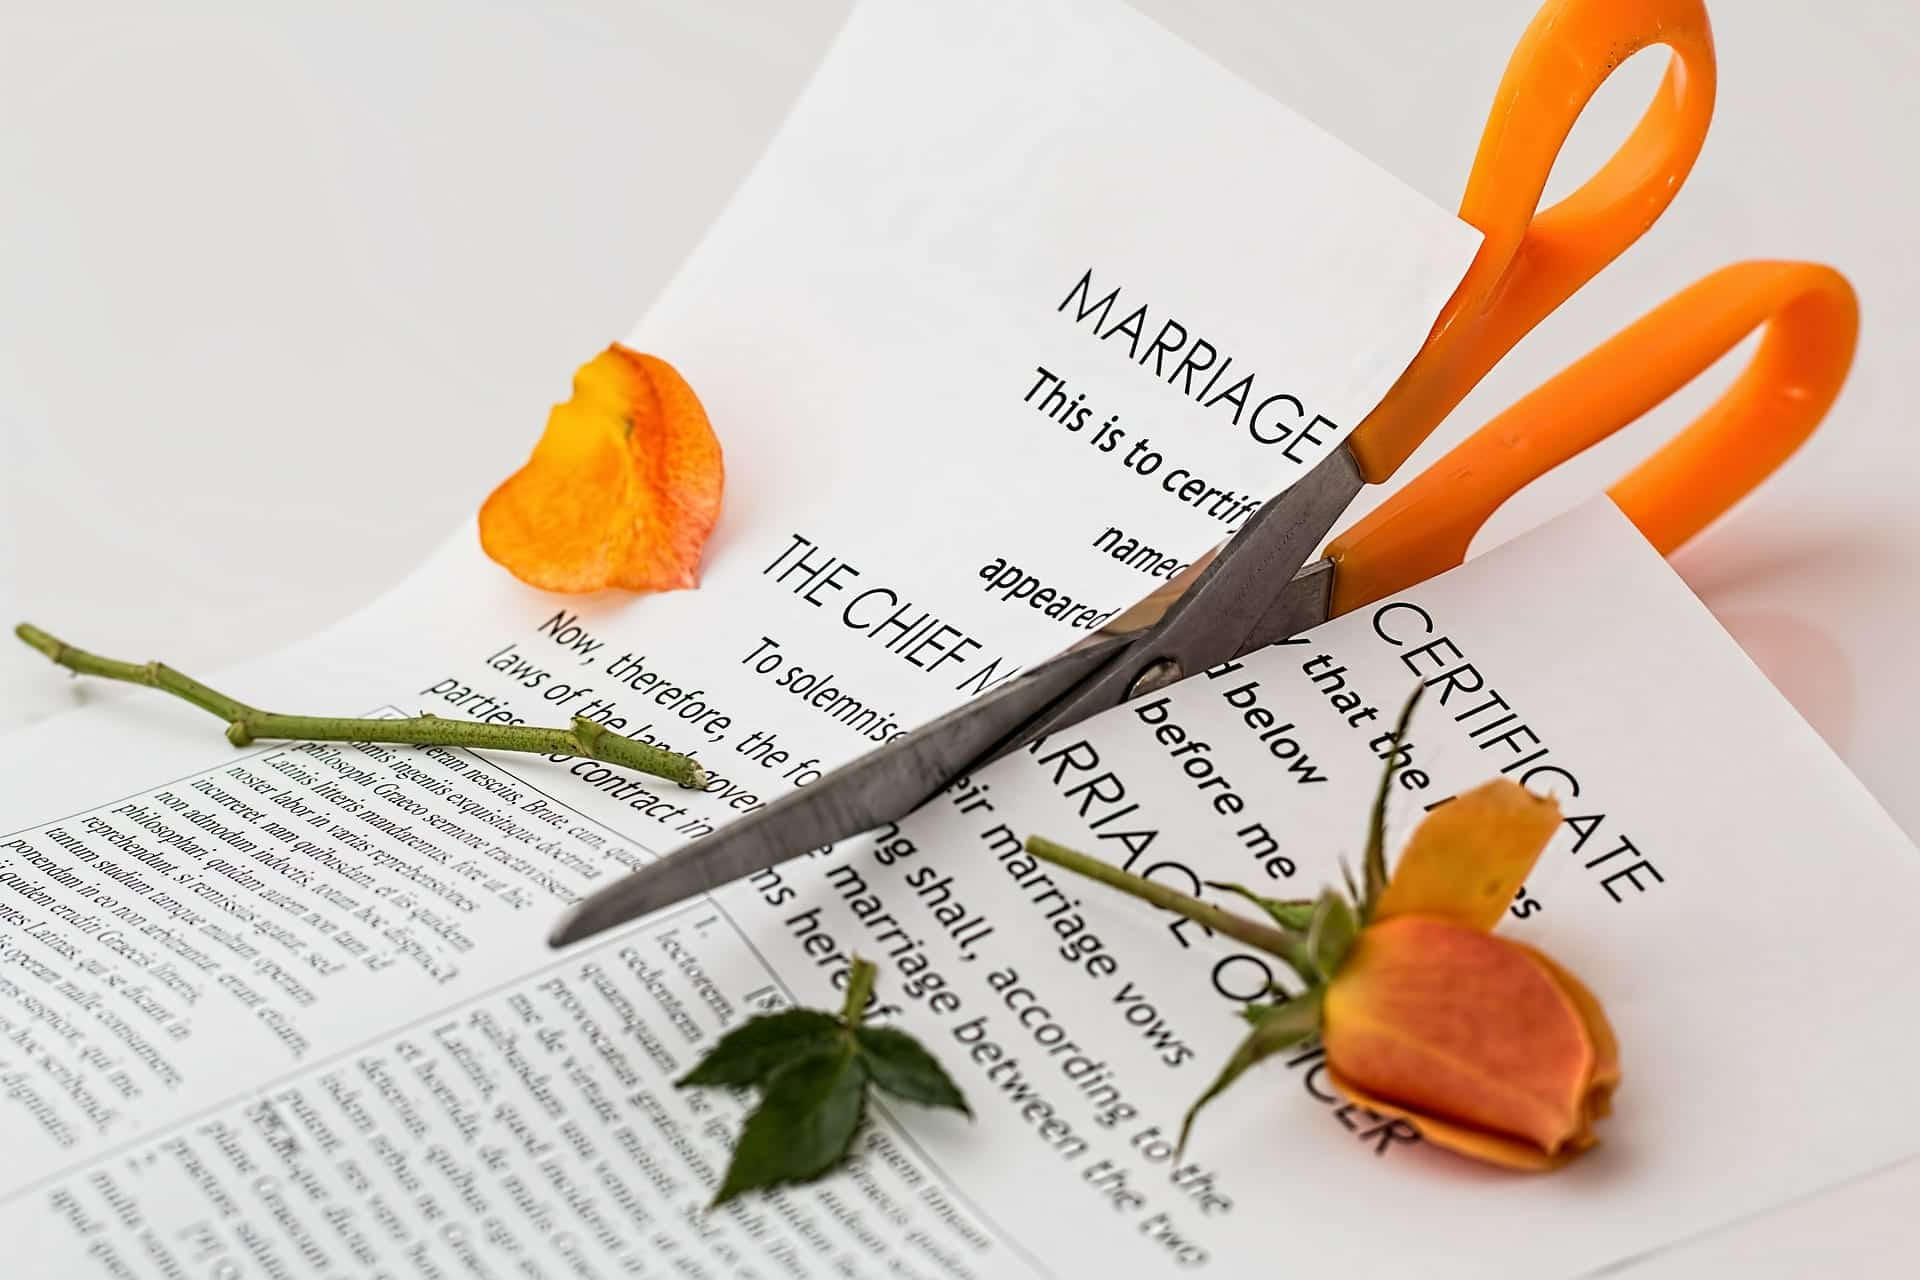 Marriage certificate with orange rose, both being cut in two by orange-handled scissors; image by Stevepb, via Pixabay.com.